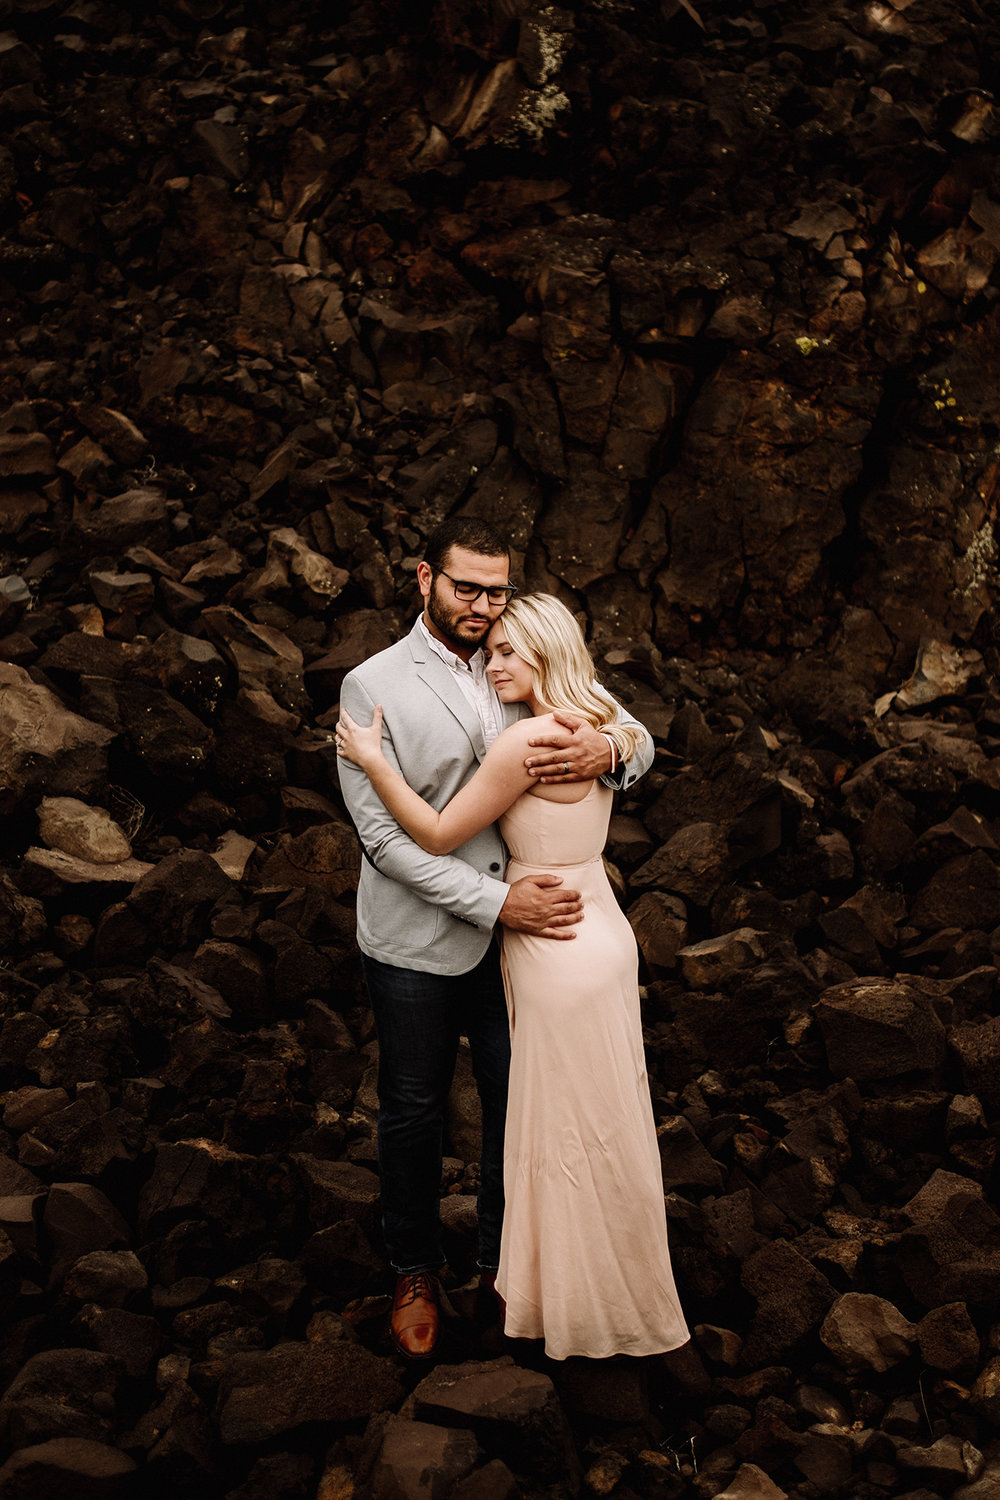 Arizona-Wedding-Photographer-Iceland-Elopement (21).jpg